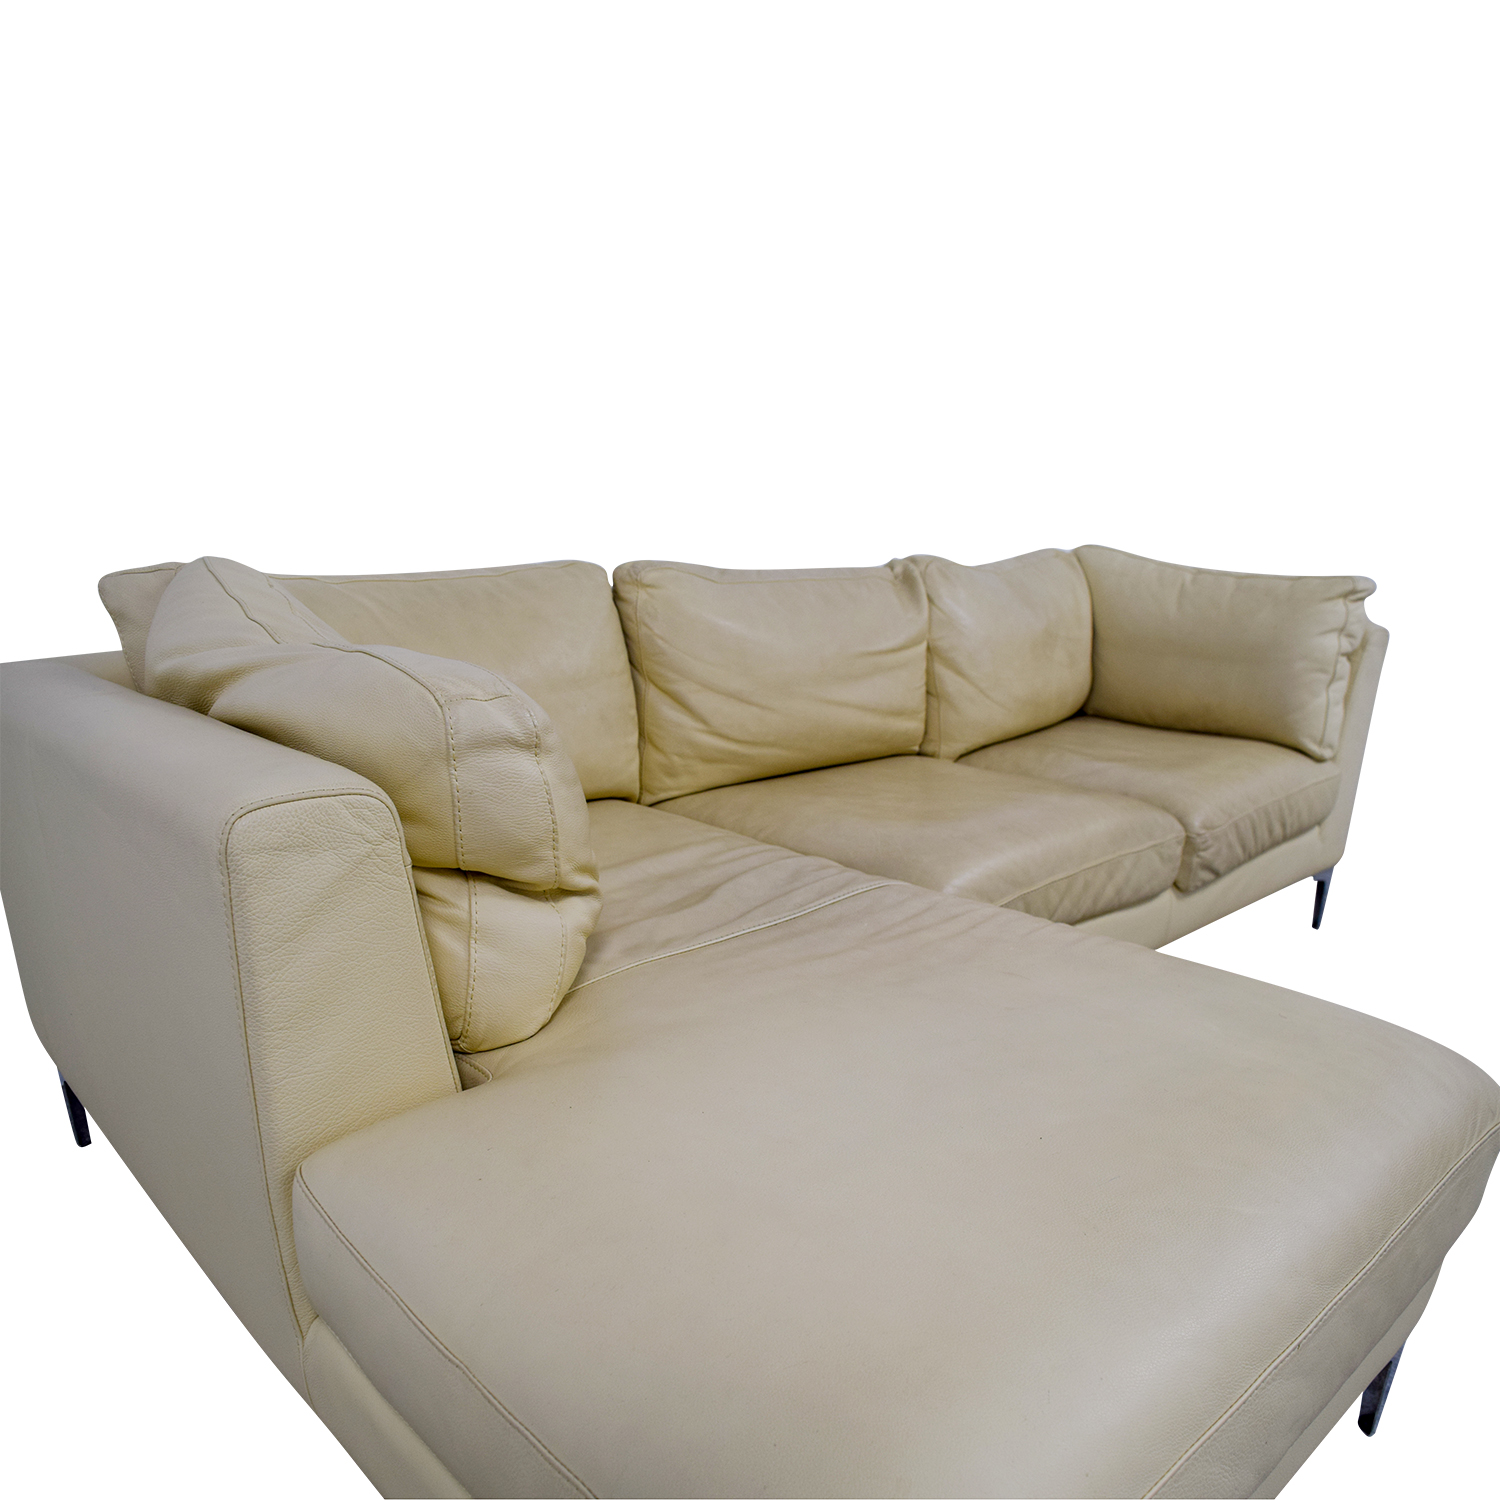 79% OFF   Design Within Reach Design Within Reach Cream Leather Chaise  Sectional / Sofas